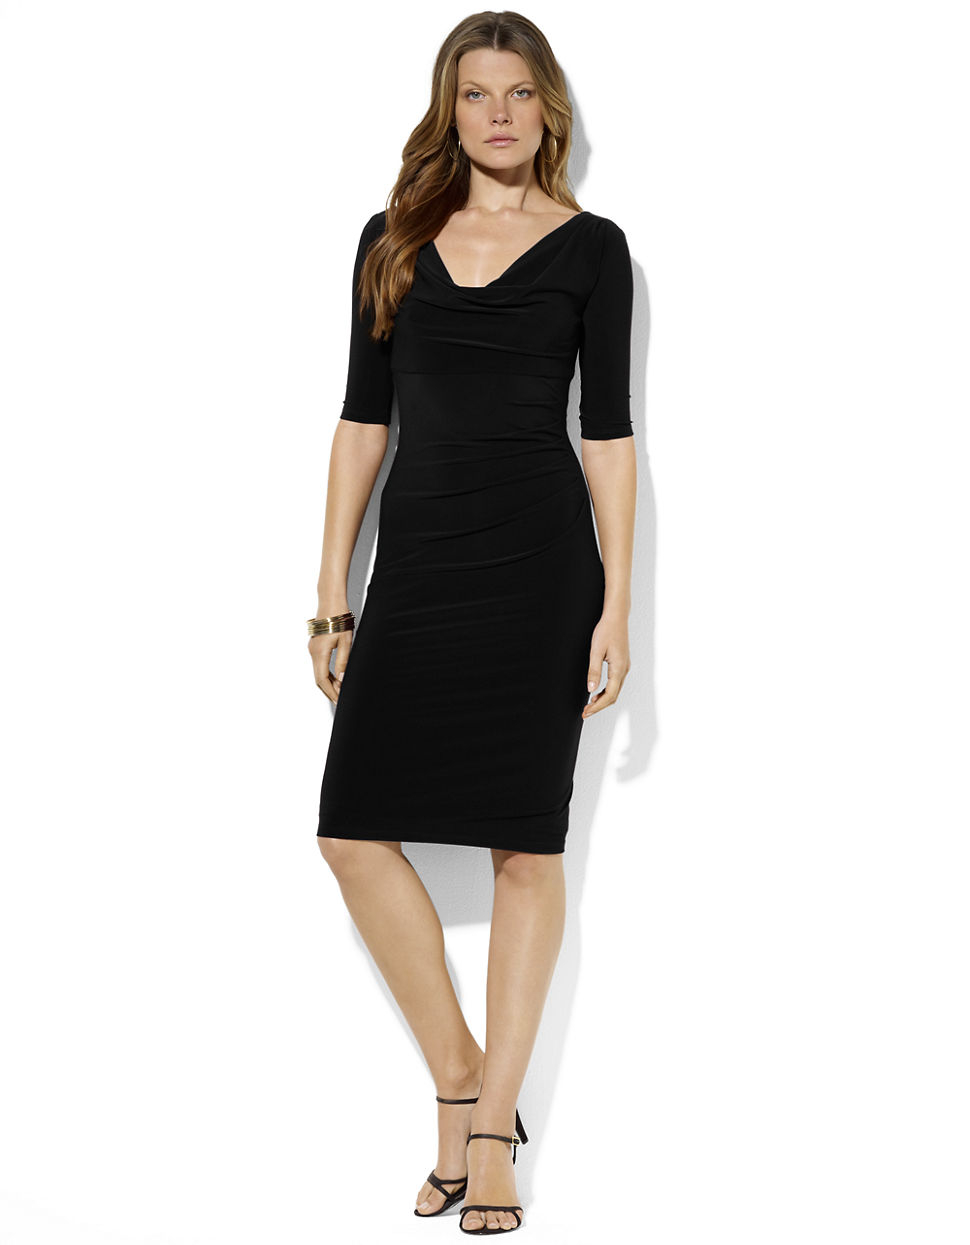 Awesome Womenu0026#39;s Knitted Dresses - Polo Ralph Lauren Maxi Dress Black Design Innovativo BNYVEEM